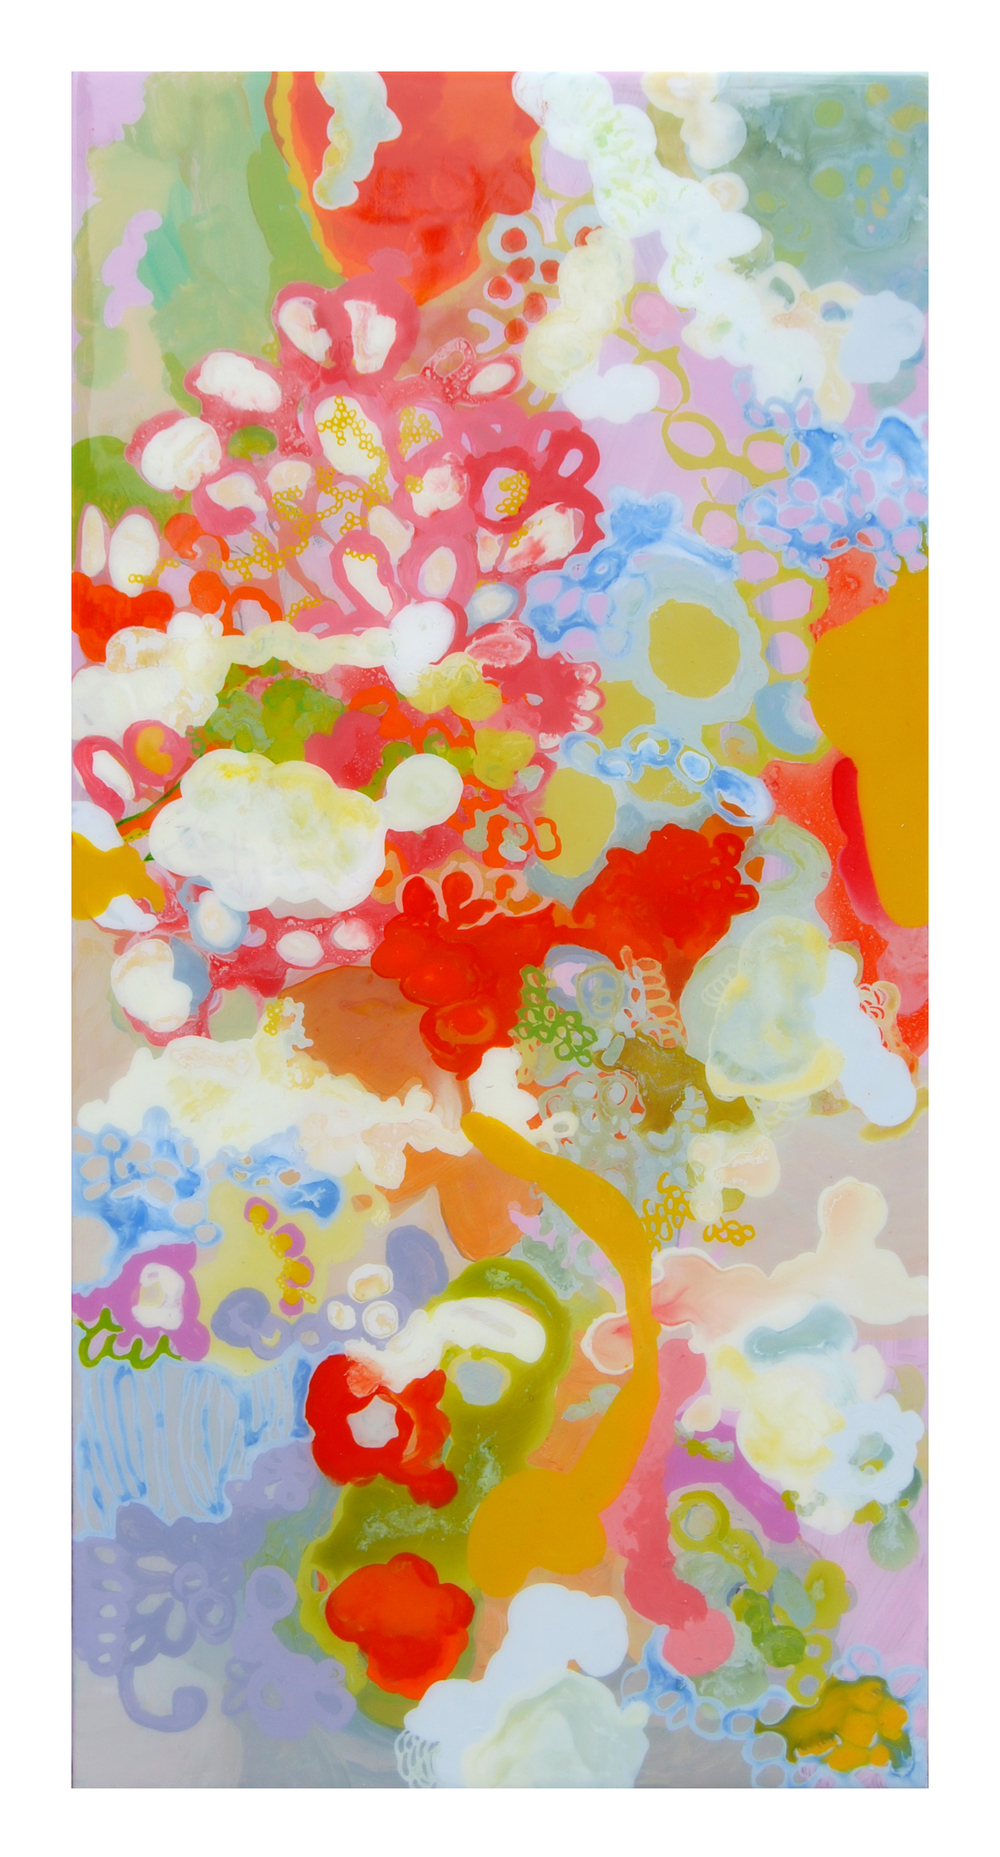 "The Secret Life of Seeds Variation 9, 12 x 24"" acrylic and resin on panel by Laura Zeck"